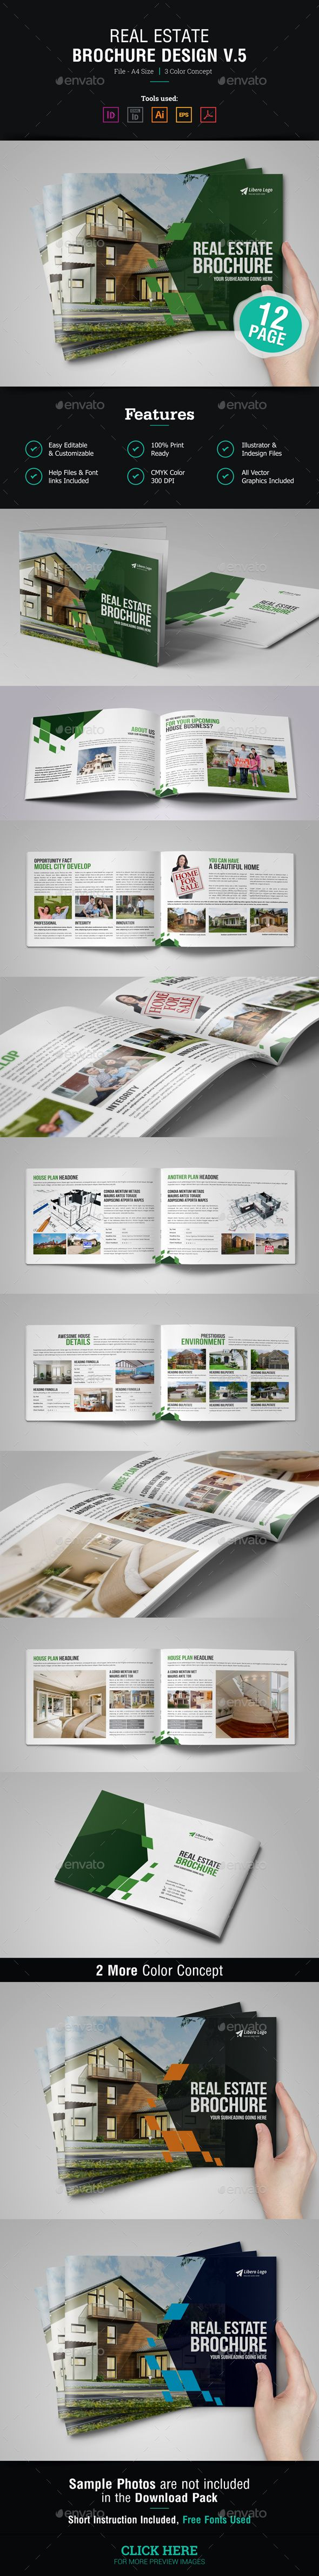 """12 page Real Estate Brochure Design v5. Ready to use for : """"Real Estate project, Property Sale, Property Rent or Business"""" Brochure and Catalog Template etc. Tools Uses : -> Adobe InDesign : INDD for CS5 version and IDML for InDesign CS4 & lower version. -> Adobe Illustrator : AI, EPS and PDF version. -> So all files are Fully Editable. Also help Notepad file """"Readme"""" included. Template Info : -> Easy to Changing Photos, Help """"Read Me"""" included. -> A4 Size : 216×303 mm in with 3mm bleed…"""